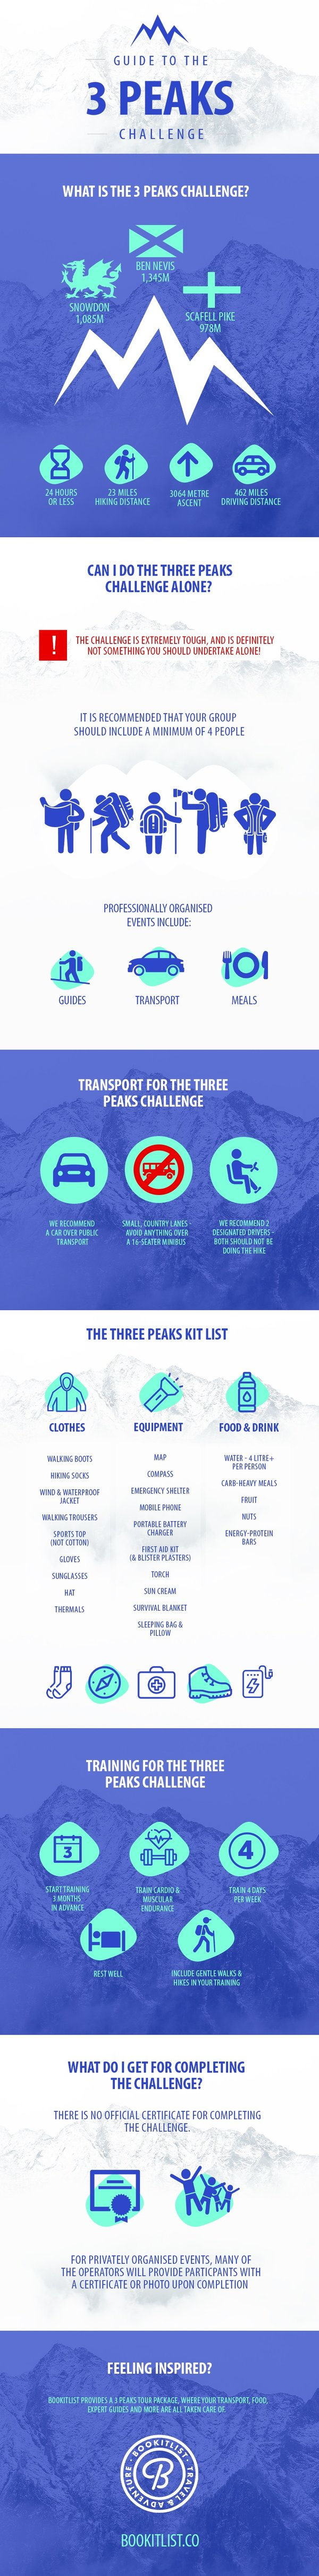 A Guide to the 3 Peaks Hiking Challenge